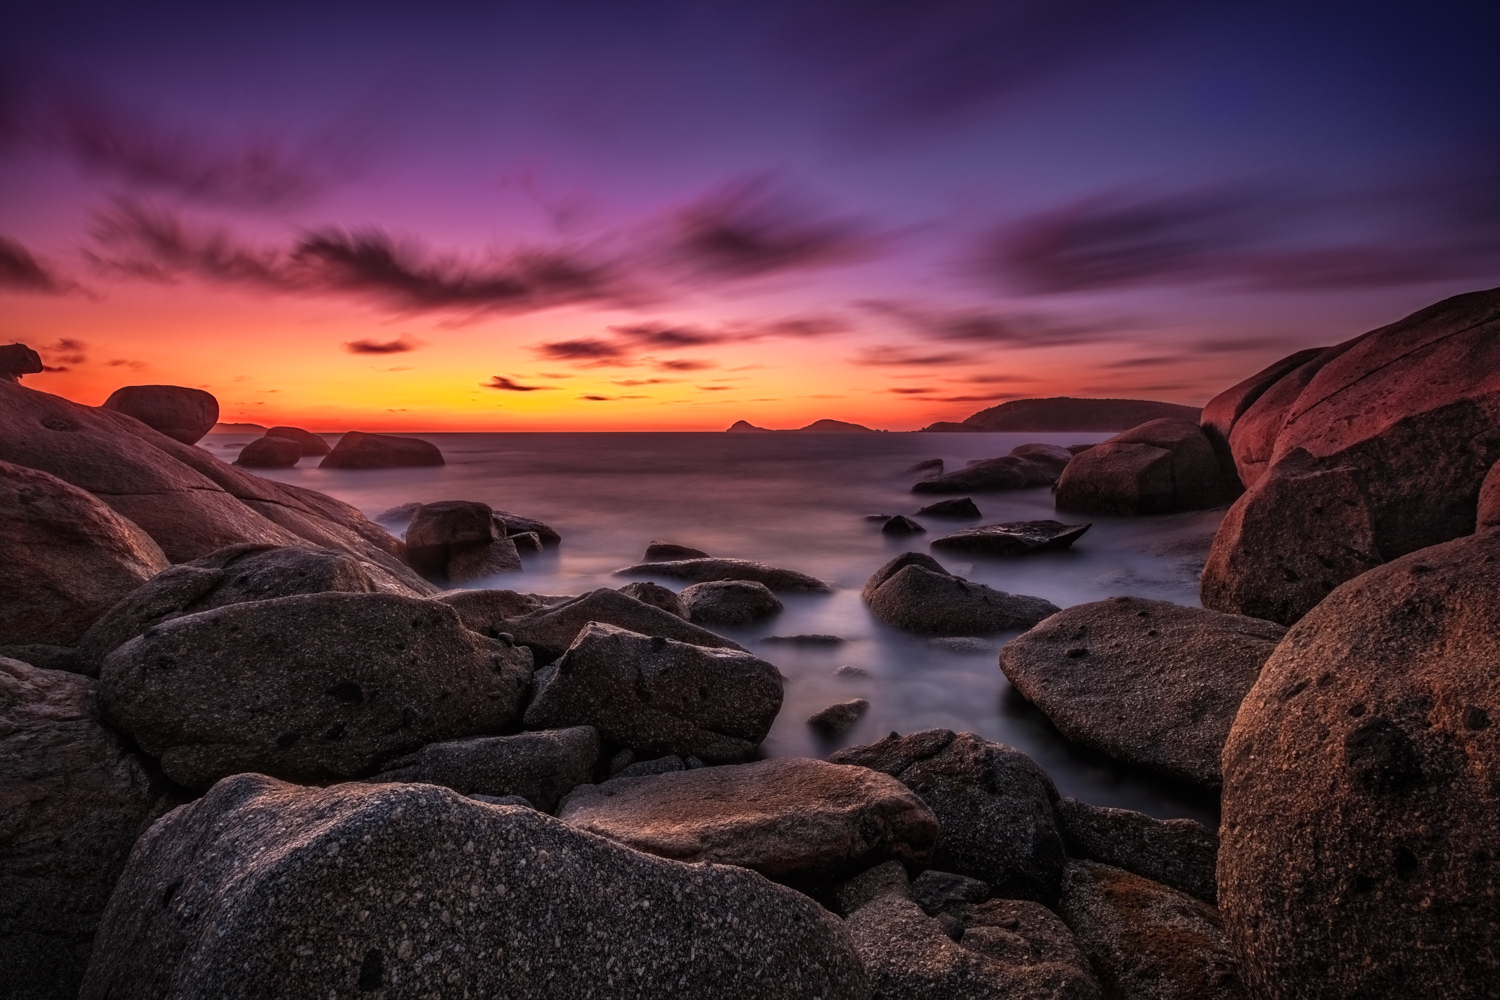 Landscape Photography Workshop Tours - Wilsons Promontory National Park